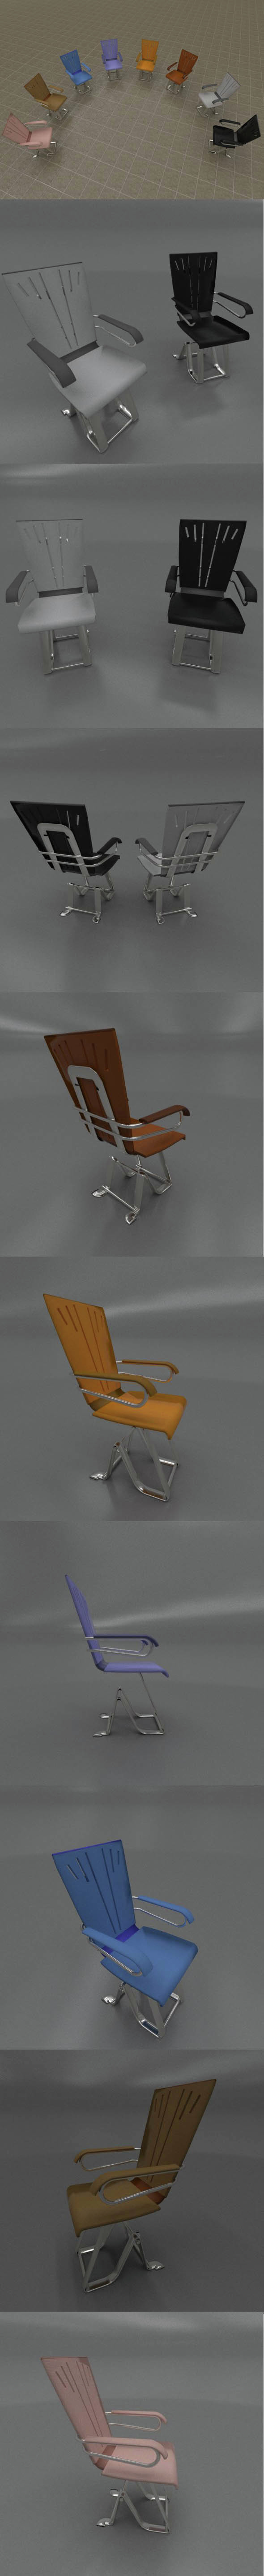 CHAIR modern design - 3DOcean Item for Sale